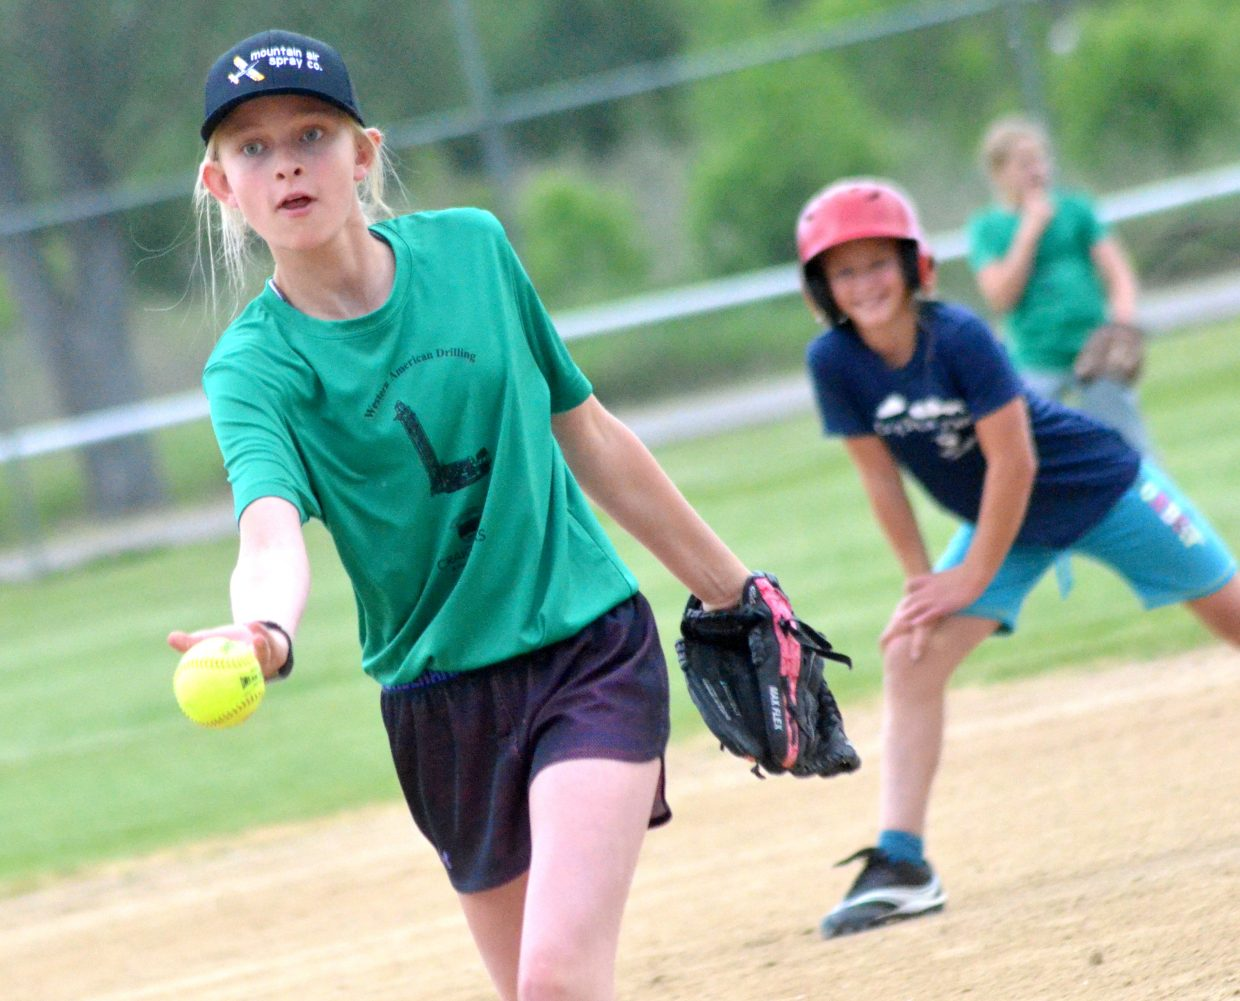 Emma Tucker lets loose a pitch during a Tuesday game between Western American Drilling and Craig Family Dental.